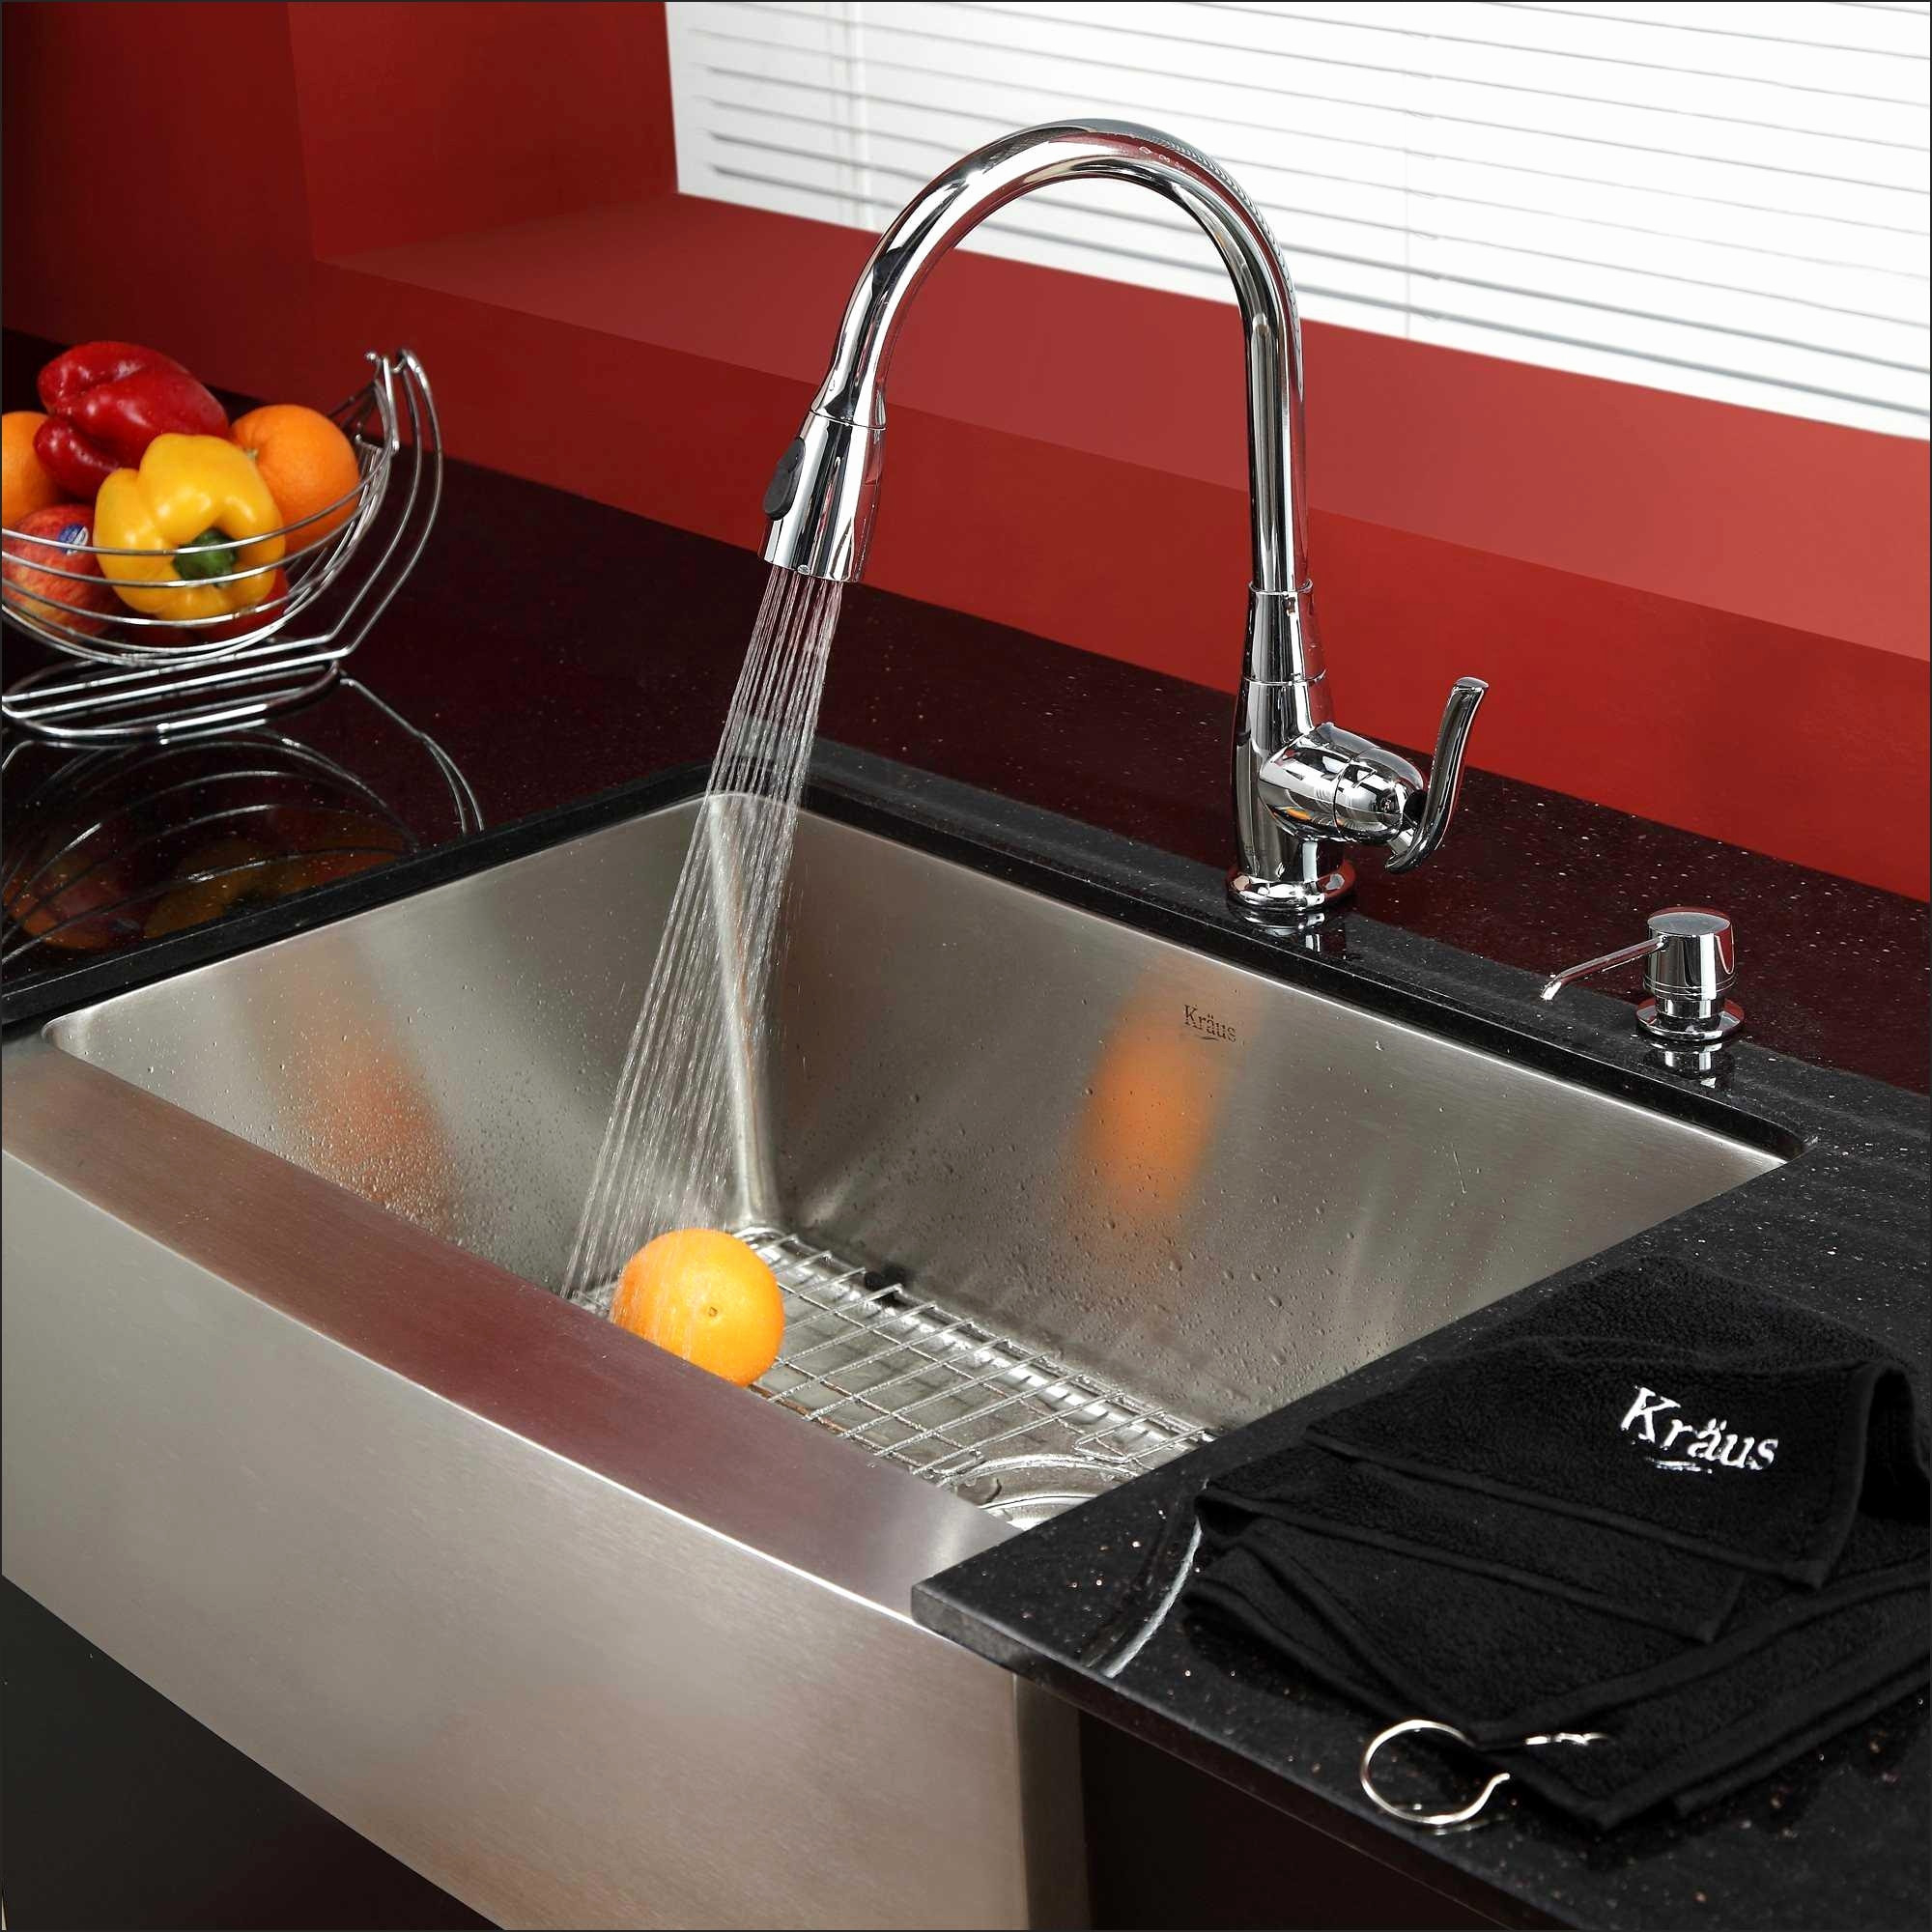 Fancy Kitchen Sink Odor New 15 Inspirational Why Does My Bathroom Sink within Lovely My Kitchen Sink Smells